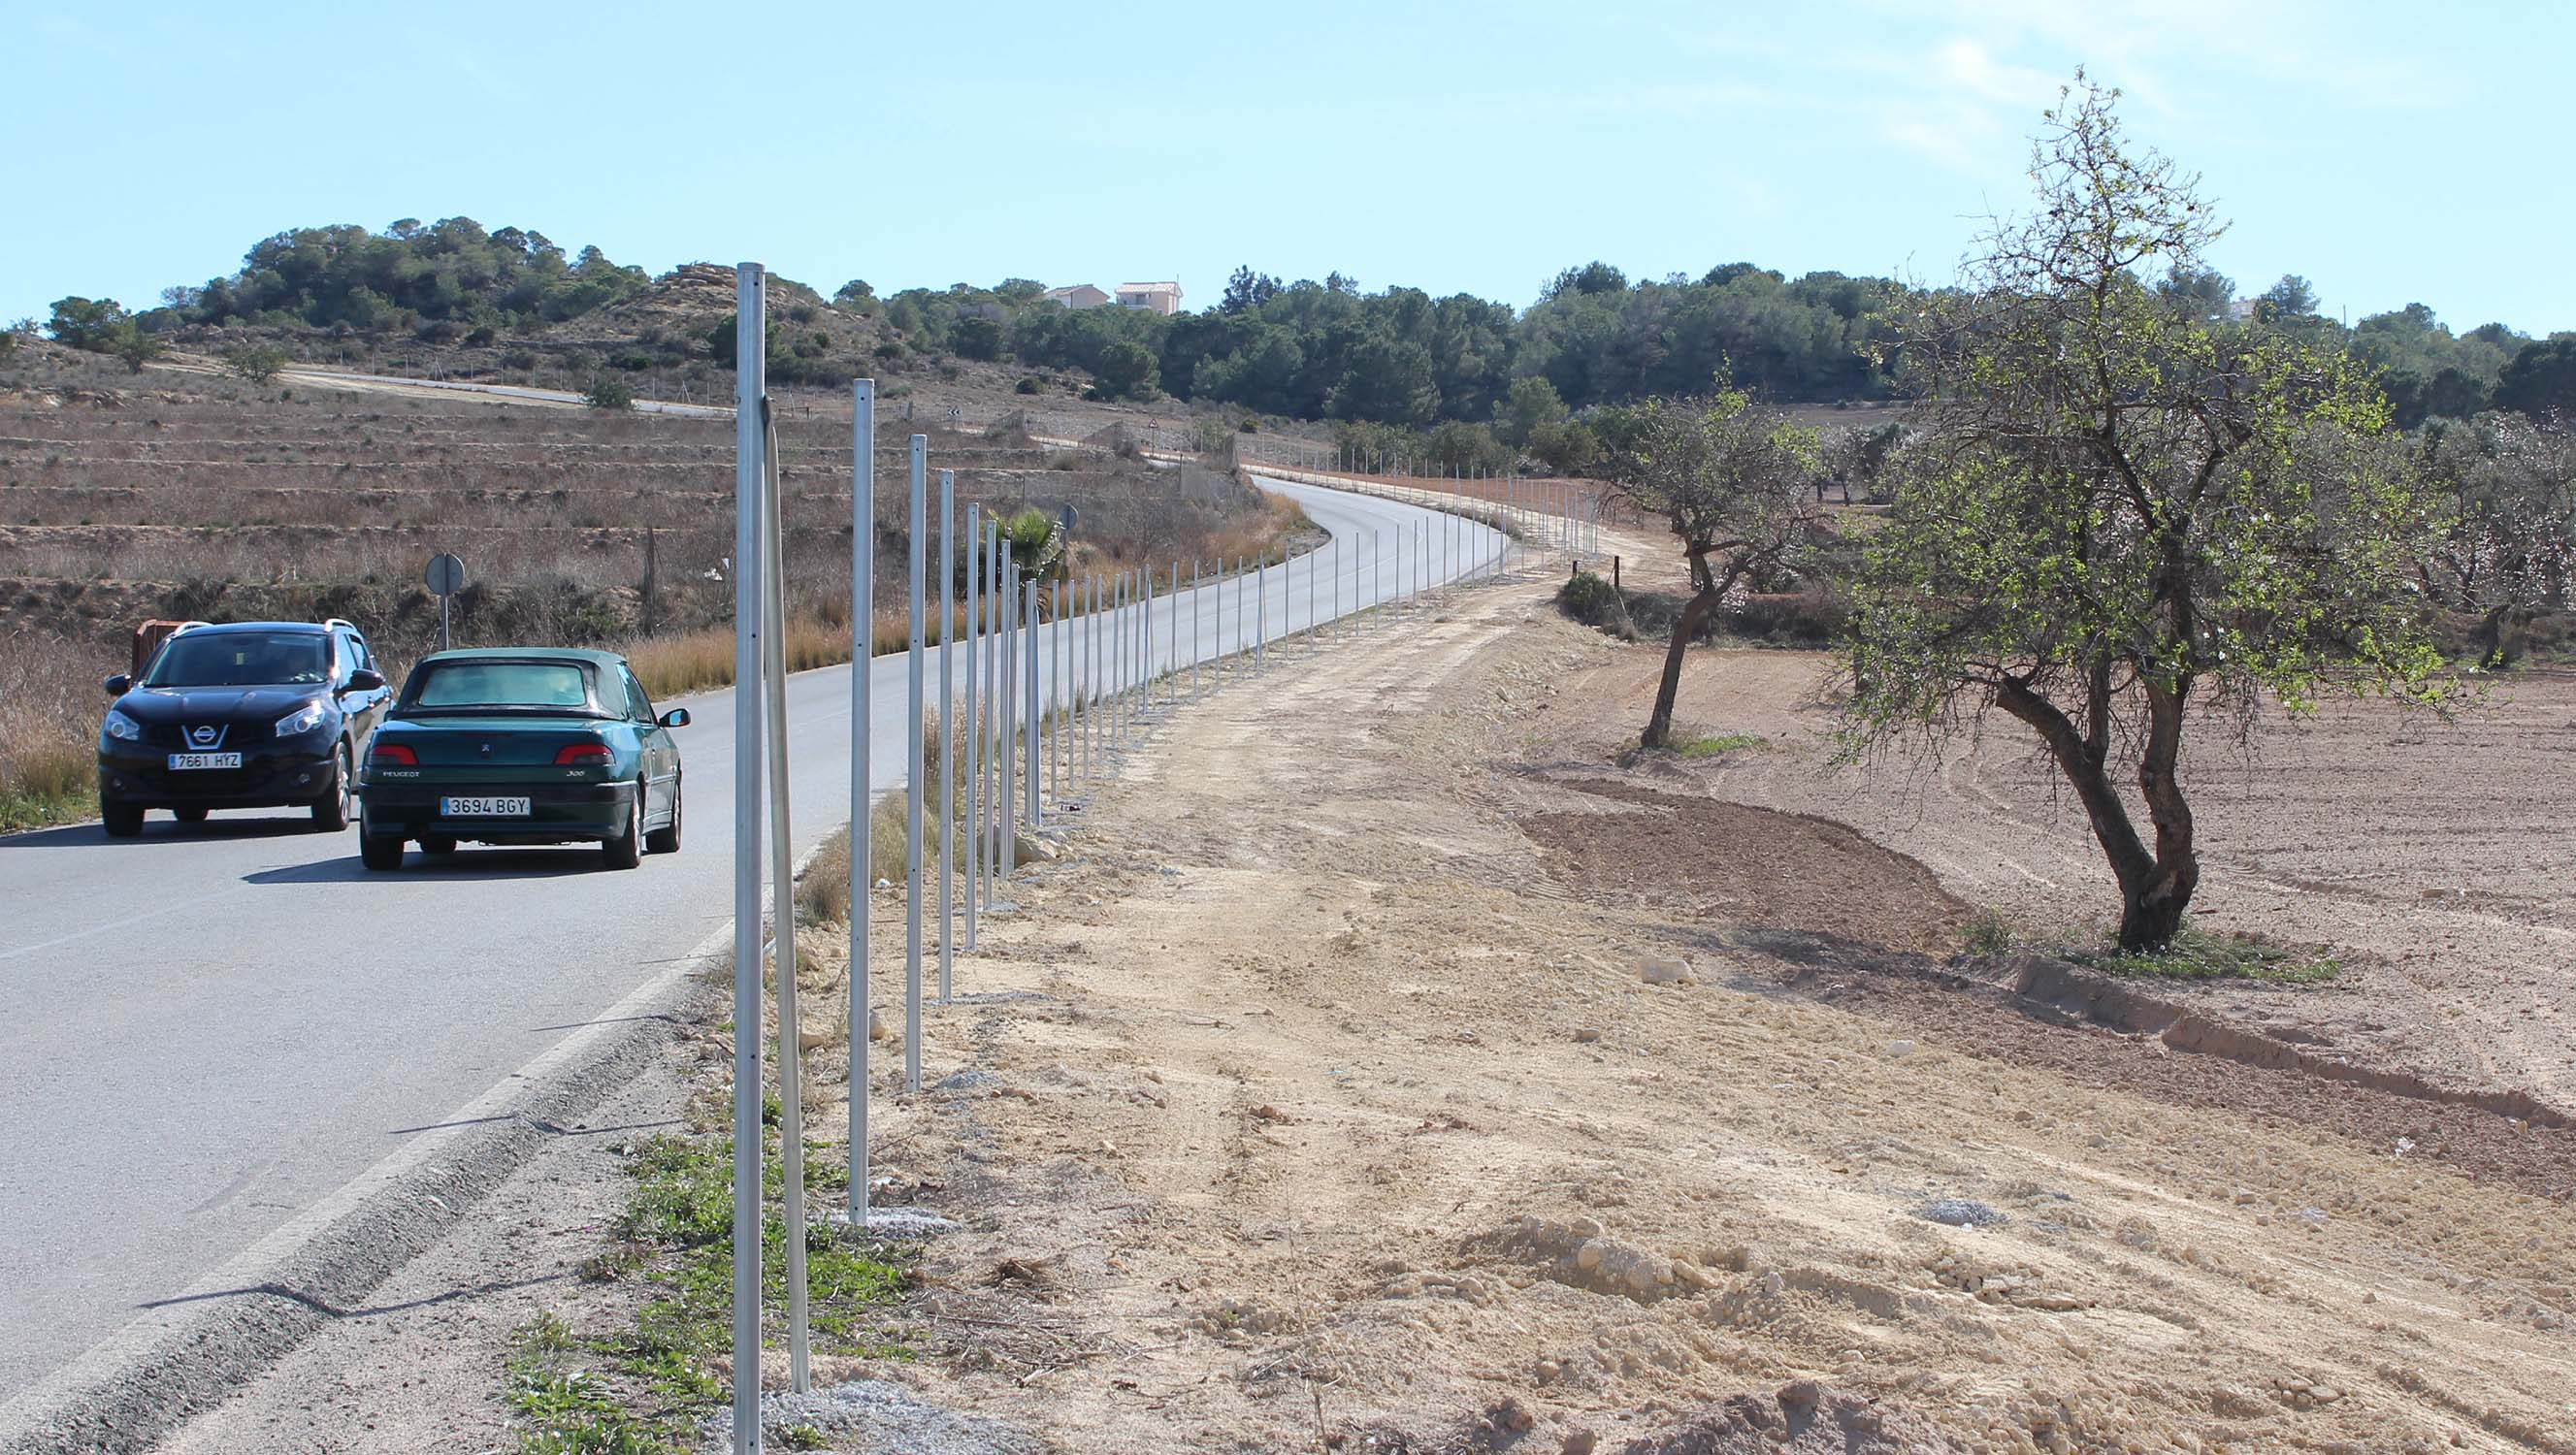 San Miguel Council order work to stop on controversial fencing